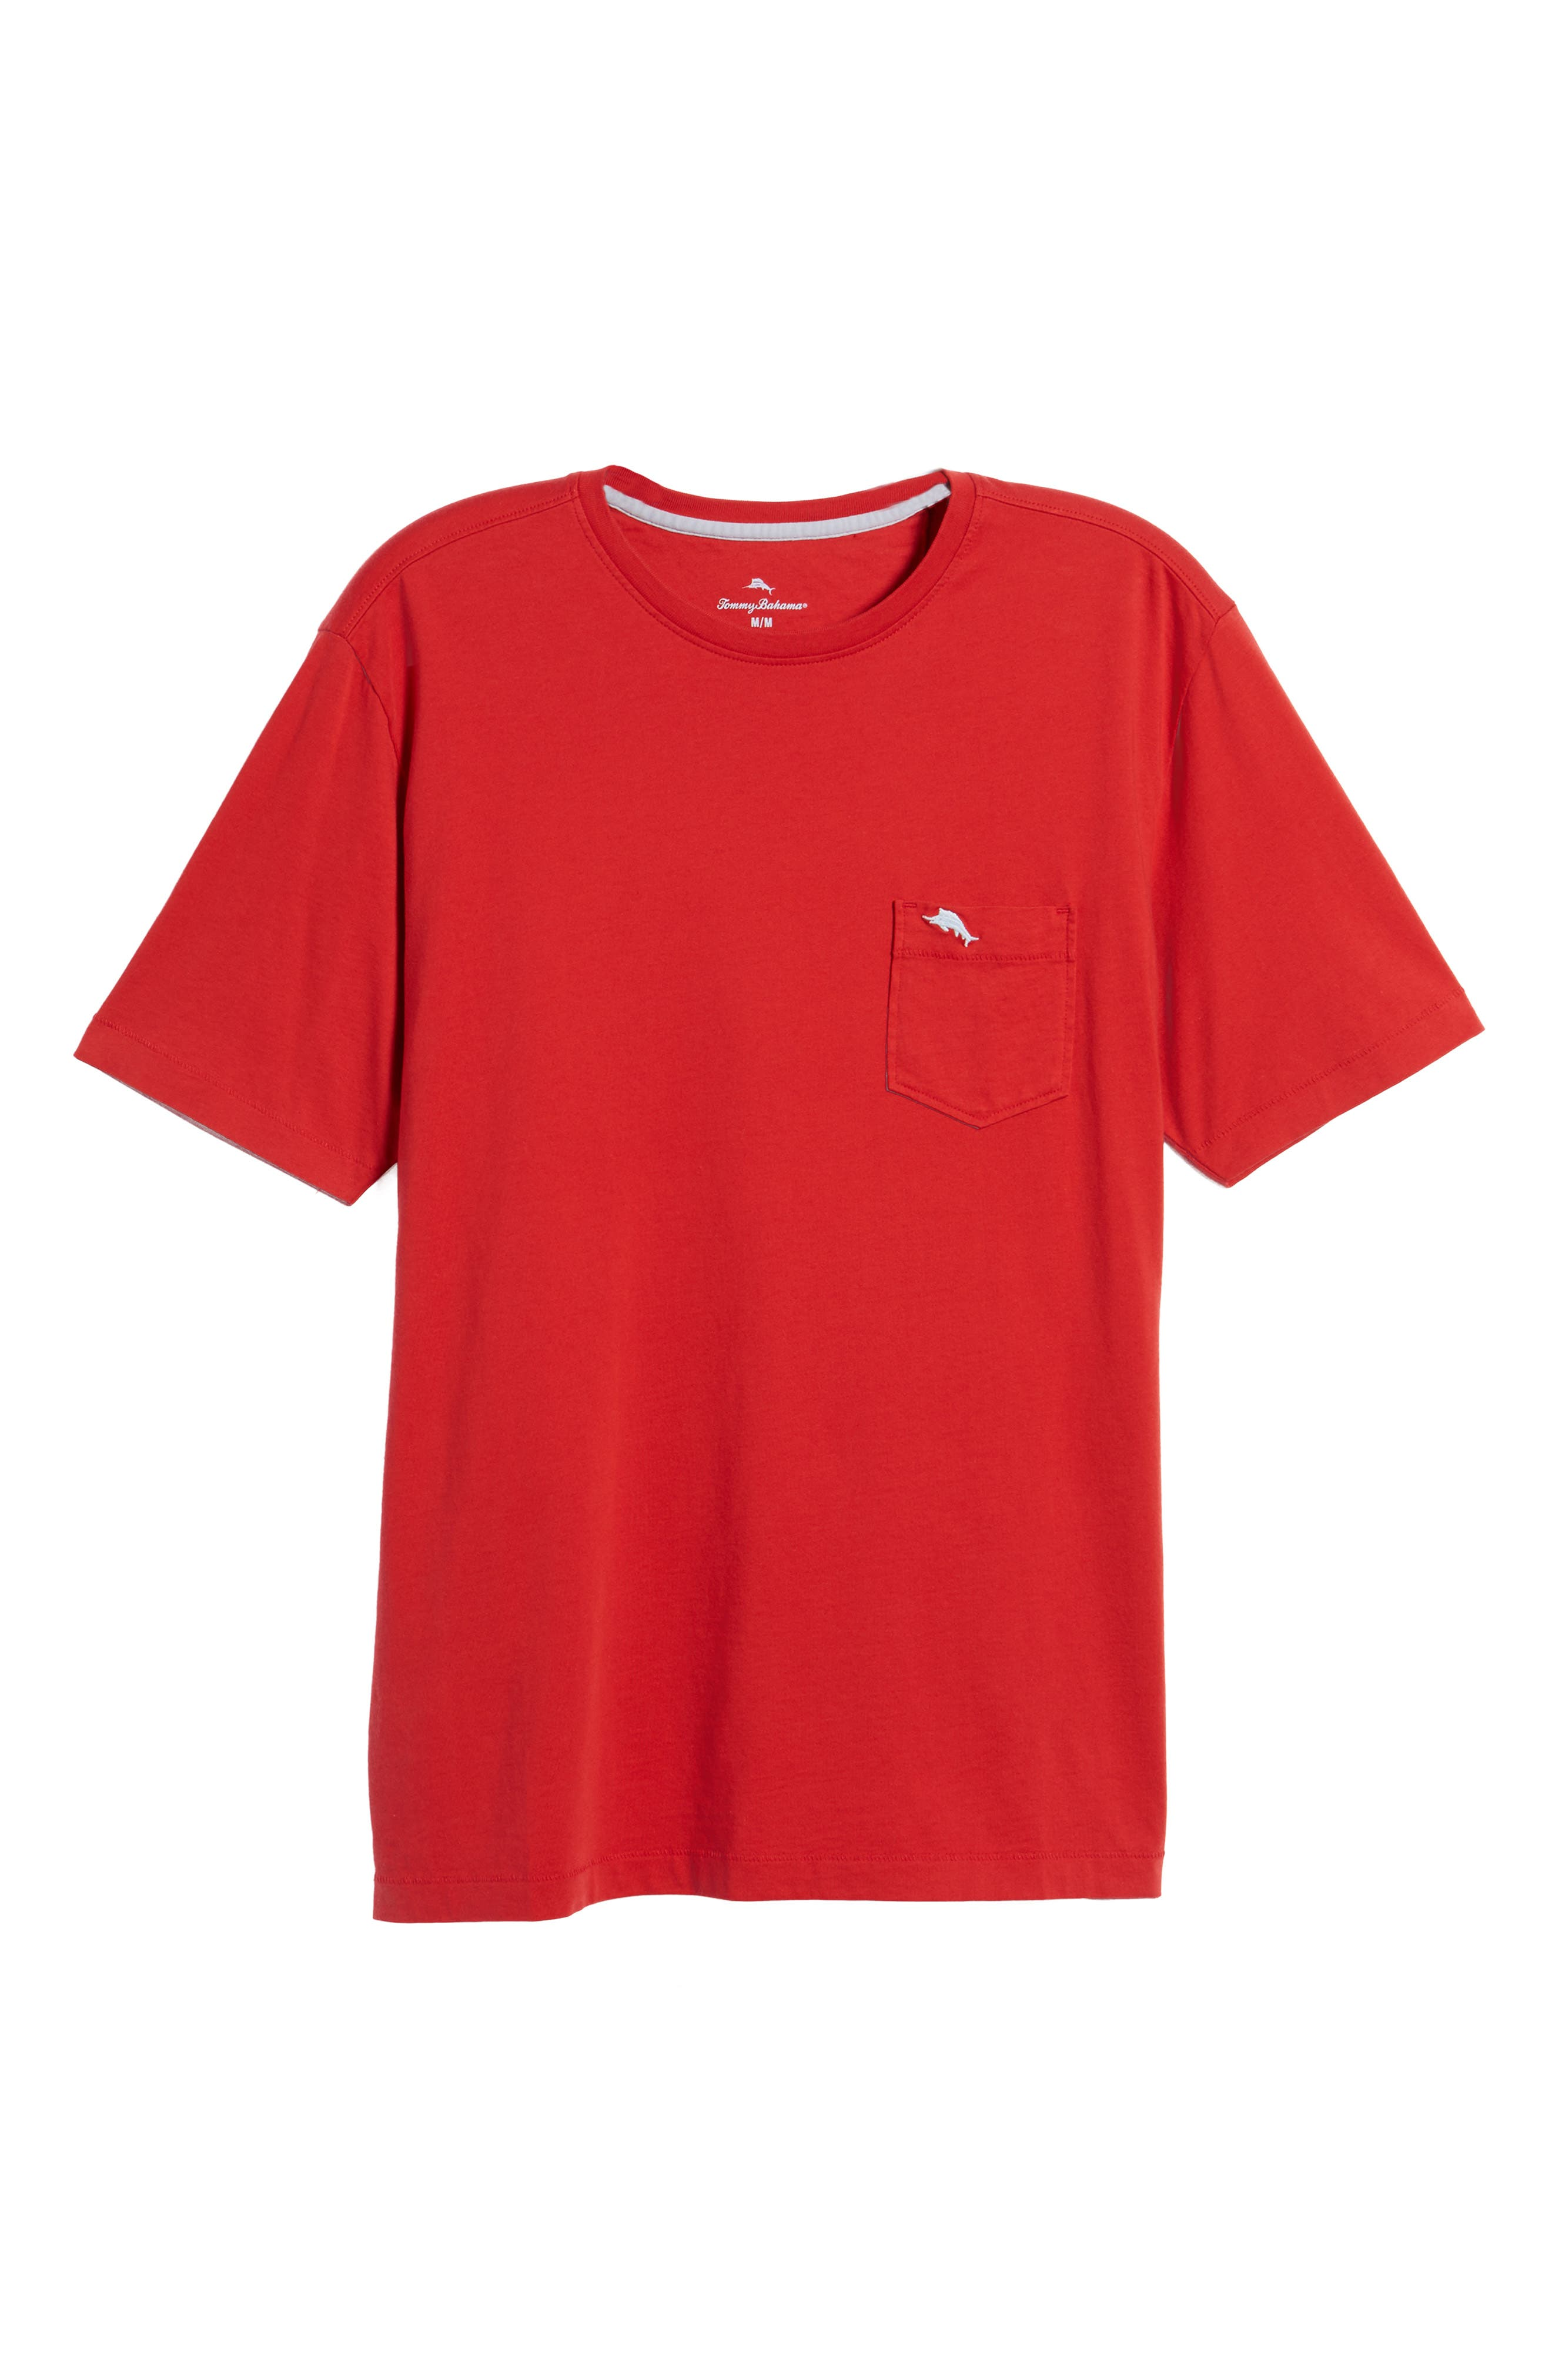 'New Bali Sky' Original Fit Crewneck Pocket T-Shirt,                             Alternate thumbnail 4, color,                             Regal Red